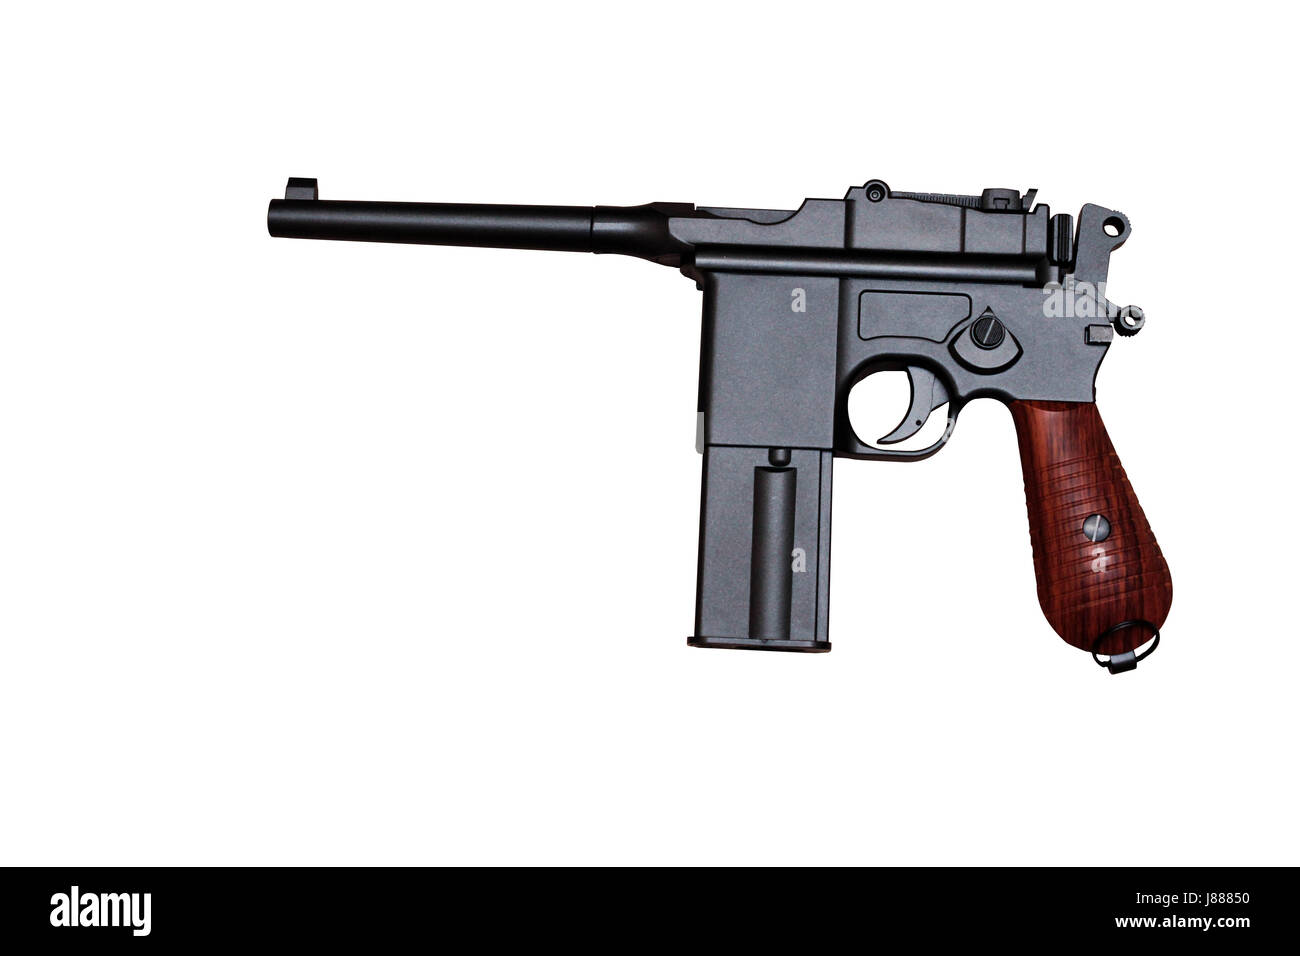 Pistol Of The First World War The Weapon Revolver Isolate